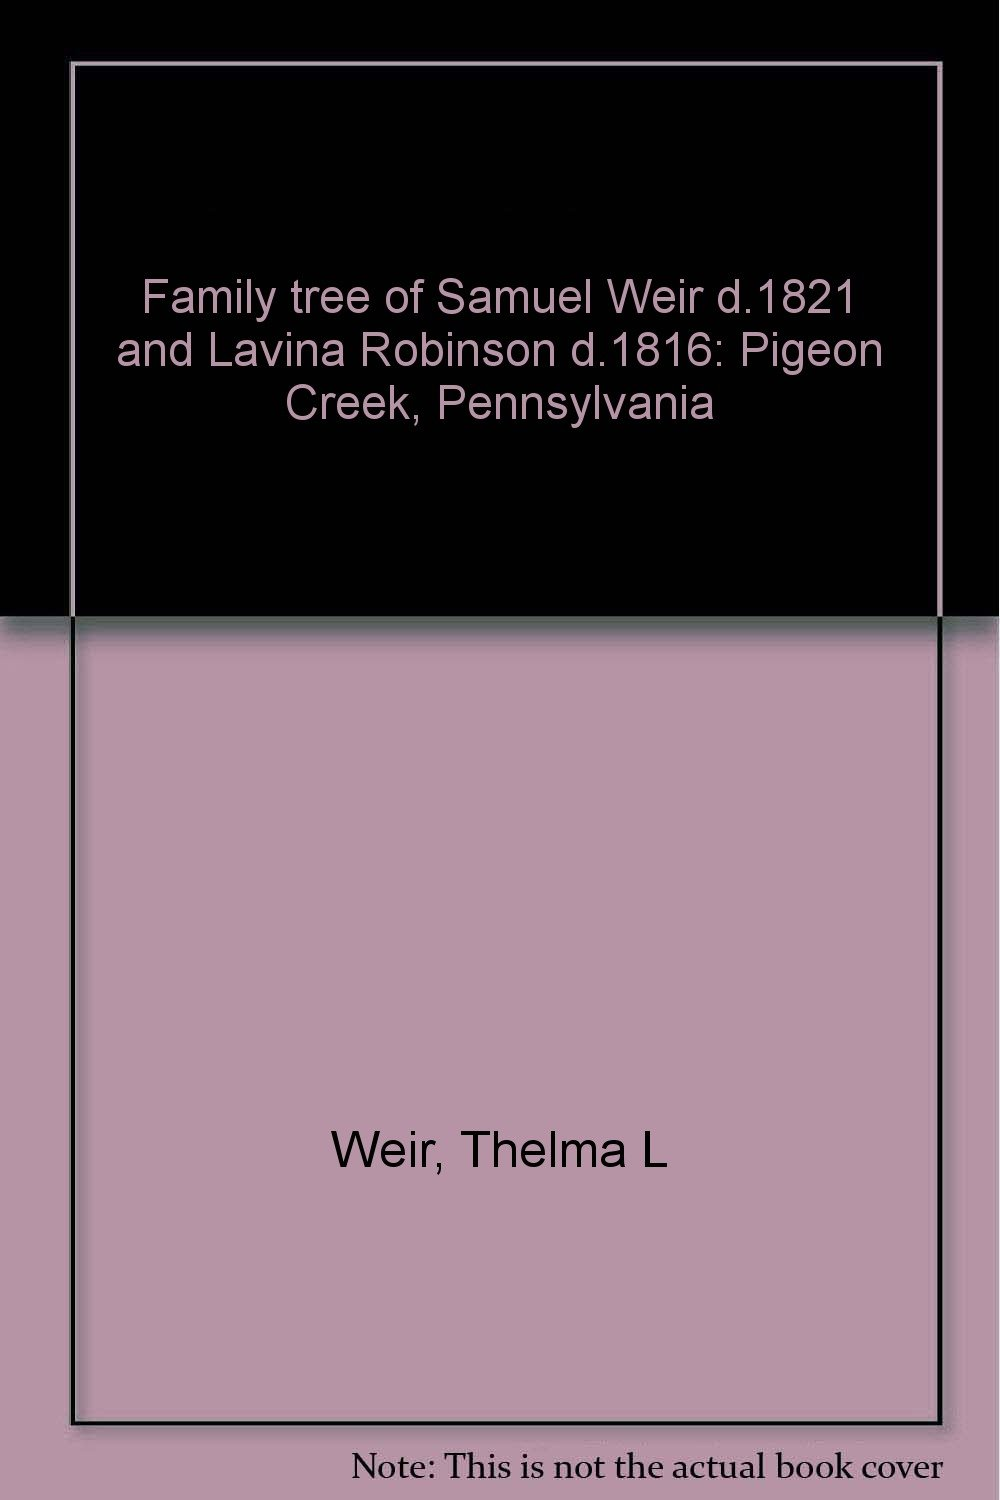 Family tree of Samuel Weir d 1821 and Lavina Robinson d 1816: Pigeon